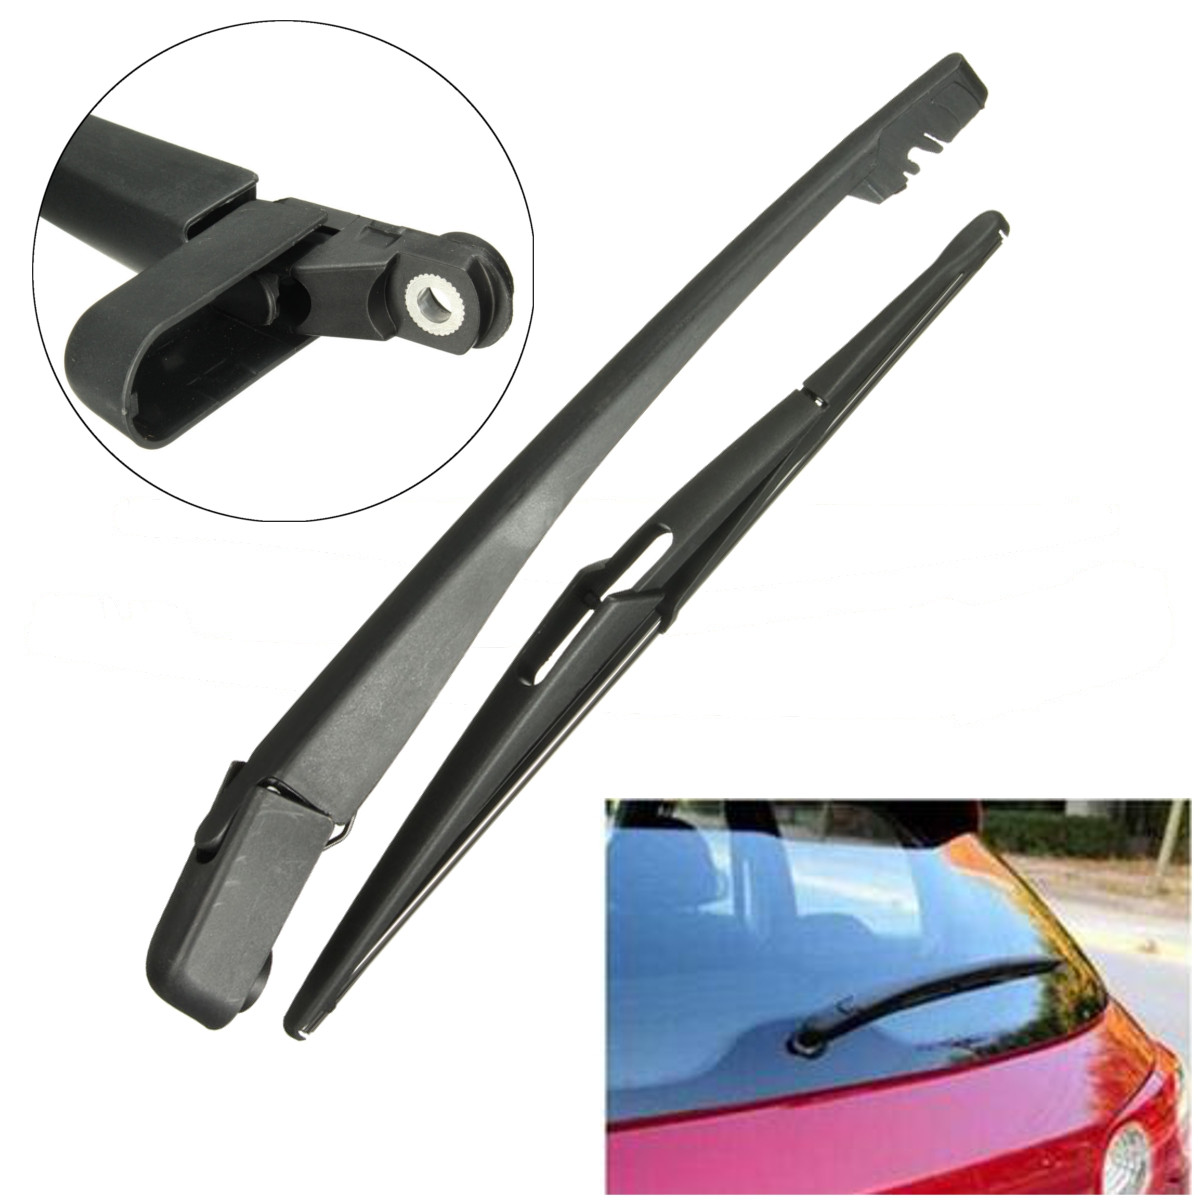 2Pcs/Set Rear Window Windshield Wiper Blade&Arm Set For VAUXHALL <font><b>OPEL</b></font> <font><b>CORSA</b></font> <font><b>D</b></font> MK4 2006 2007 <font><b>2008</b></font> 2009 2010 2011 2013 2013 image